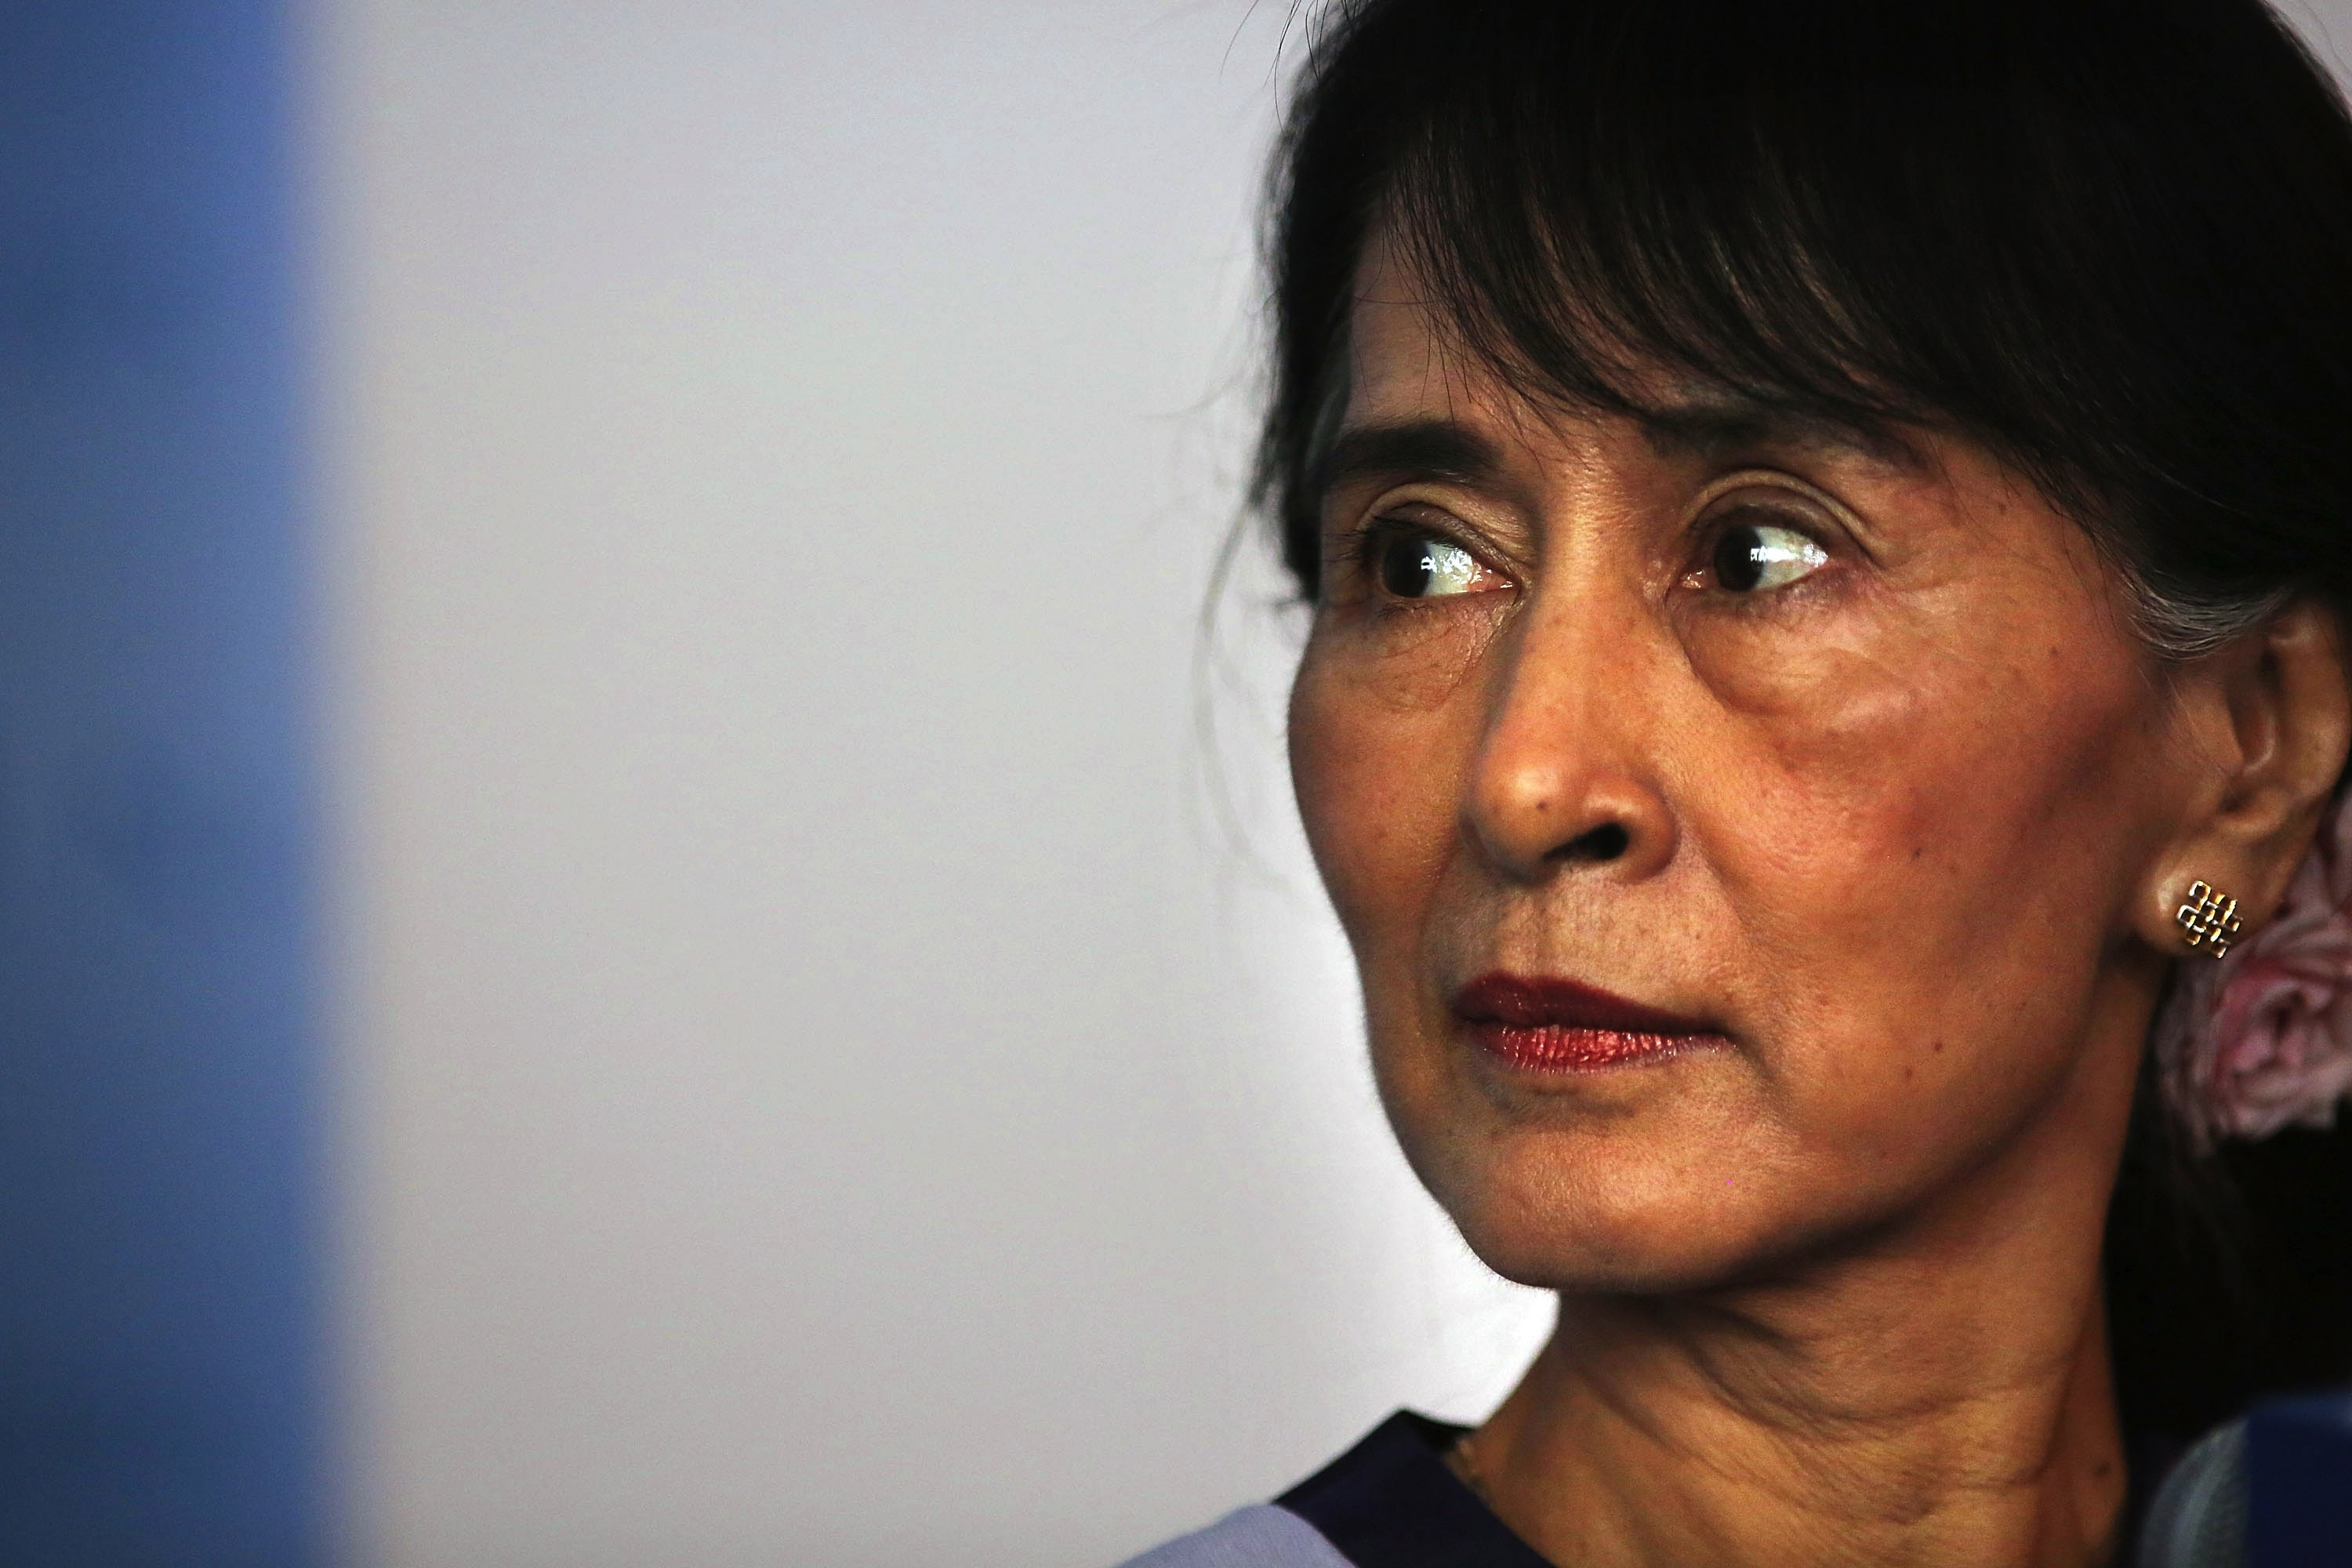 Aung San Suu Kyi Won't Speak Up for This Human Rights Abuse